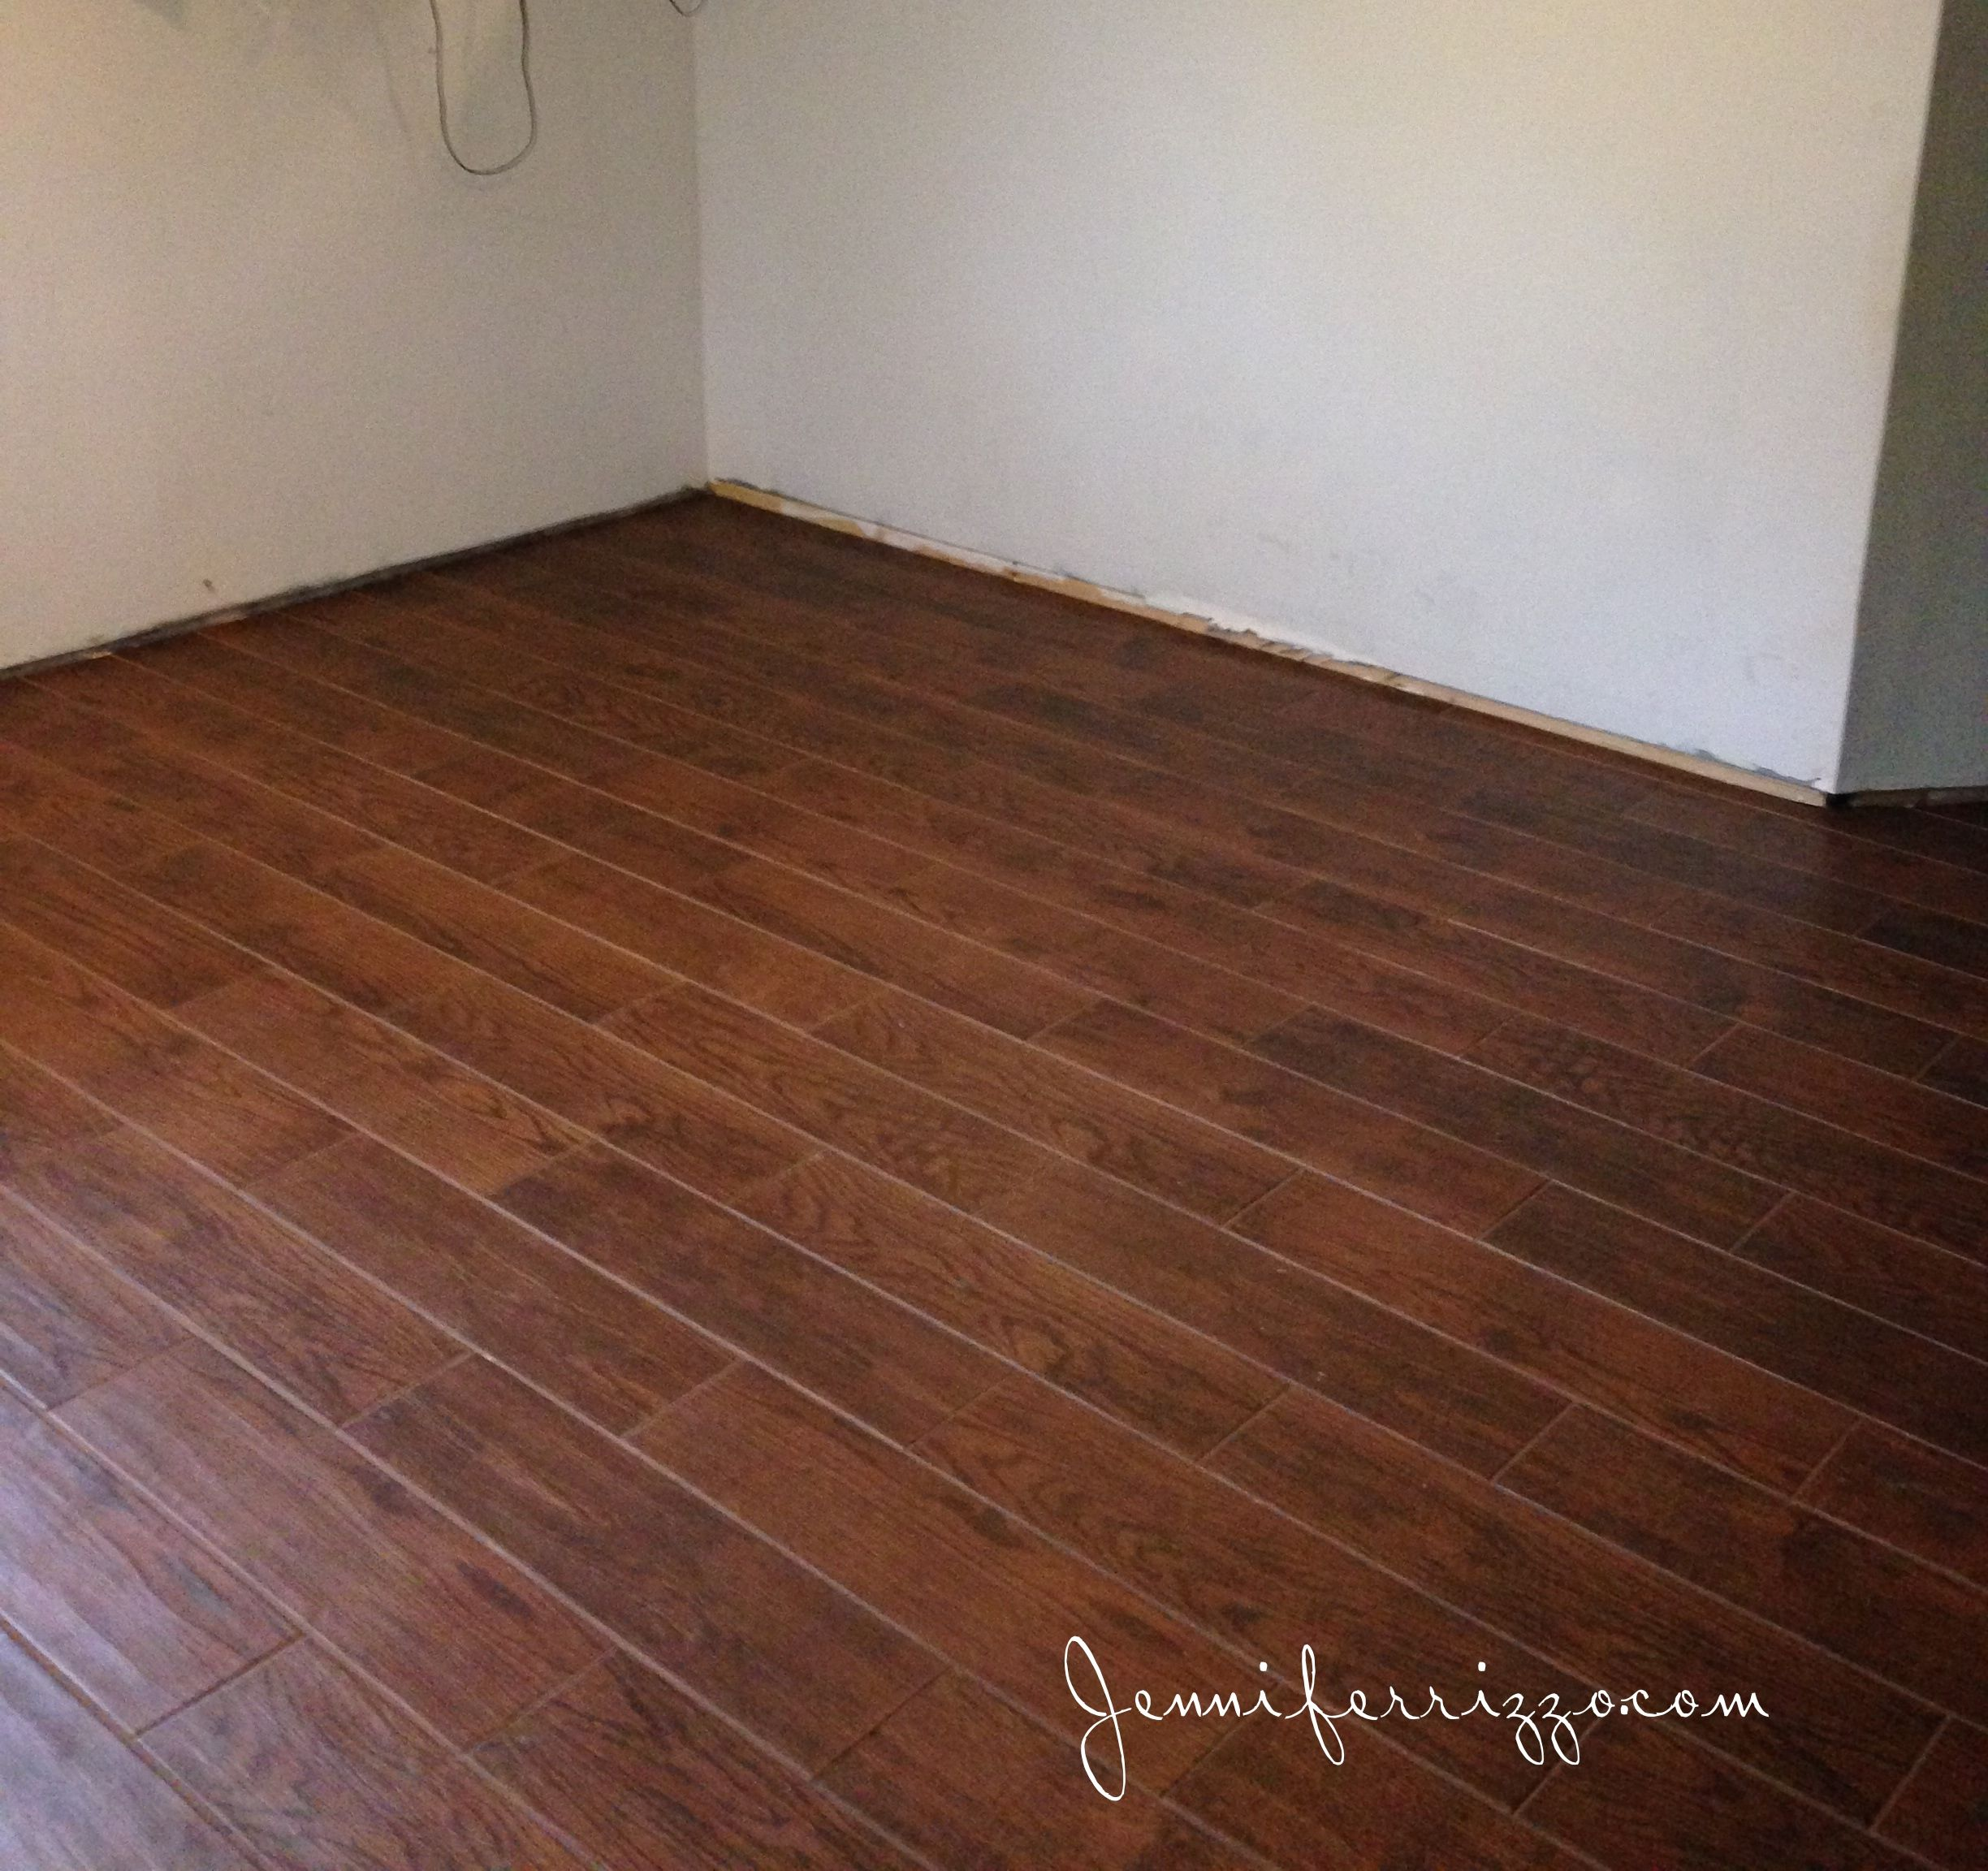 Our wood look ceramic tile is finally installed